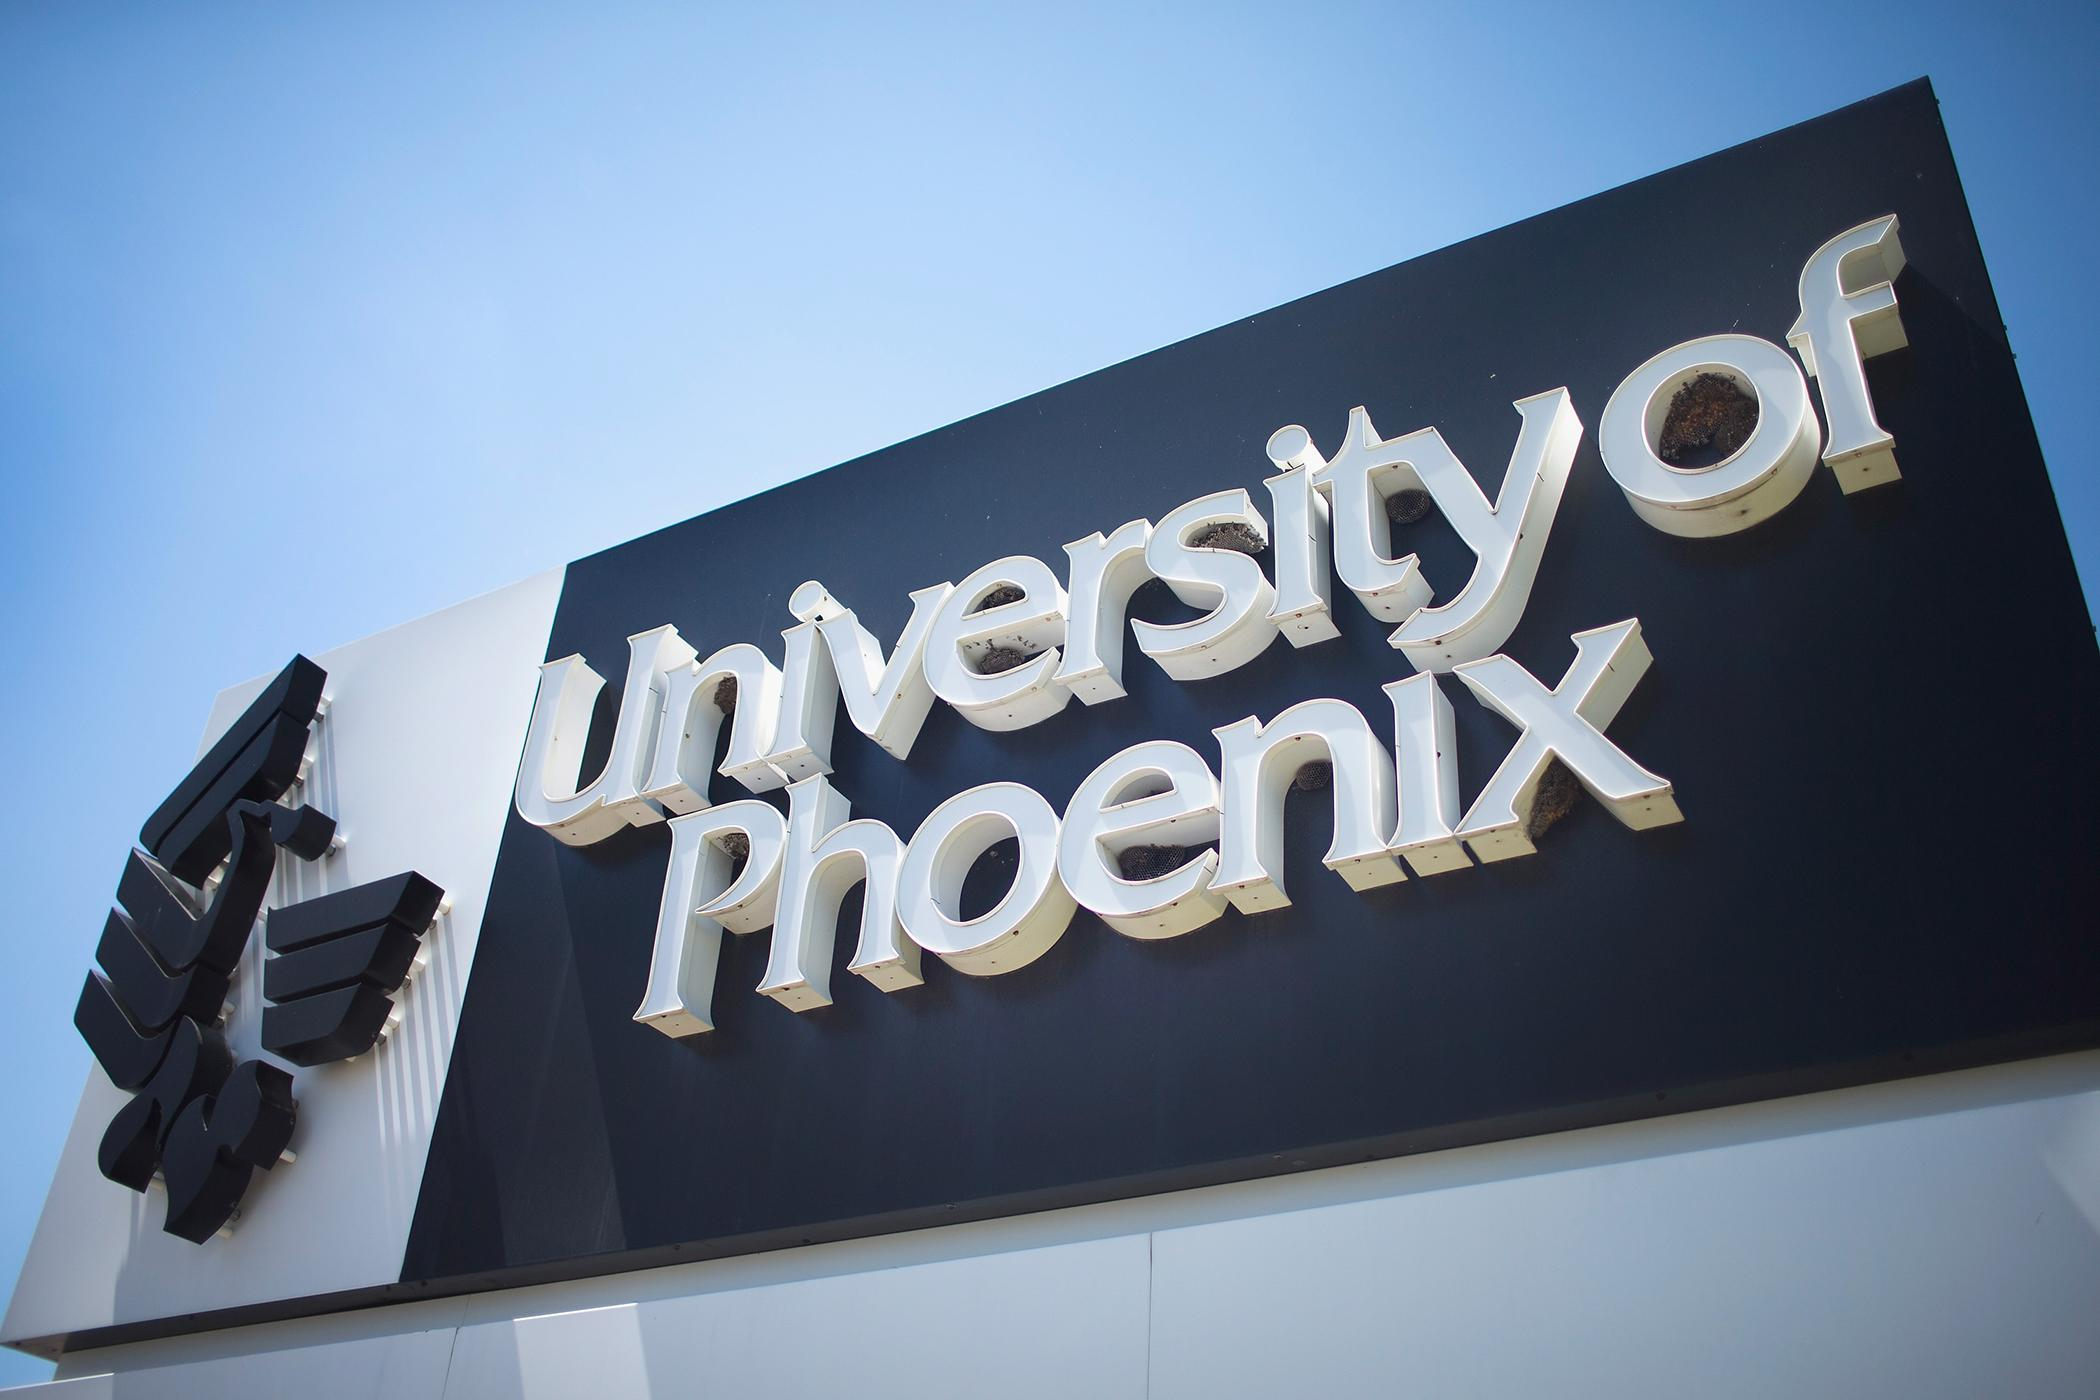 university of phoenix term papers With over 55,000 free term papers we have the writing help you need become a better writer in less time.